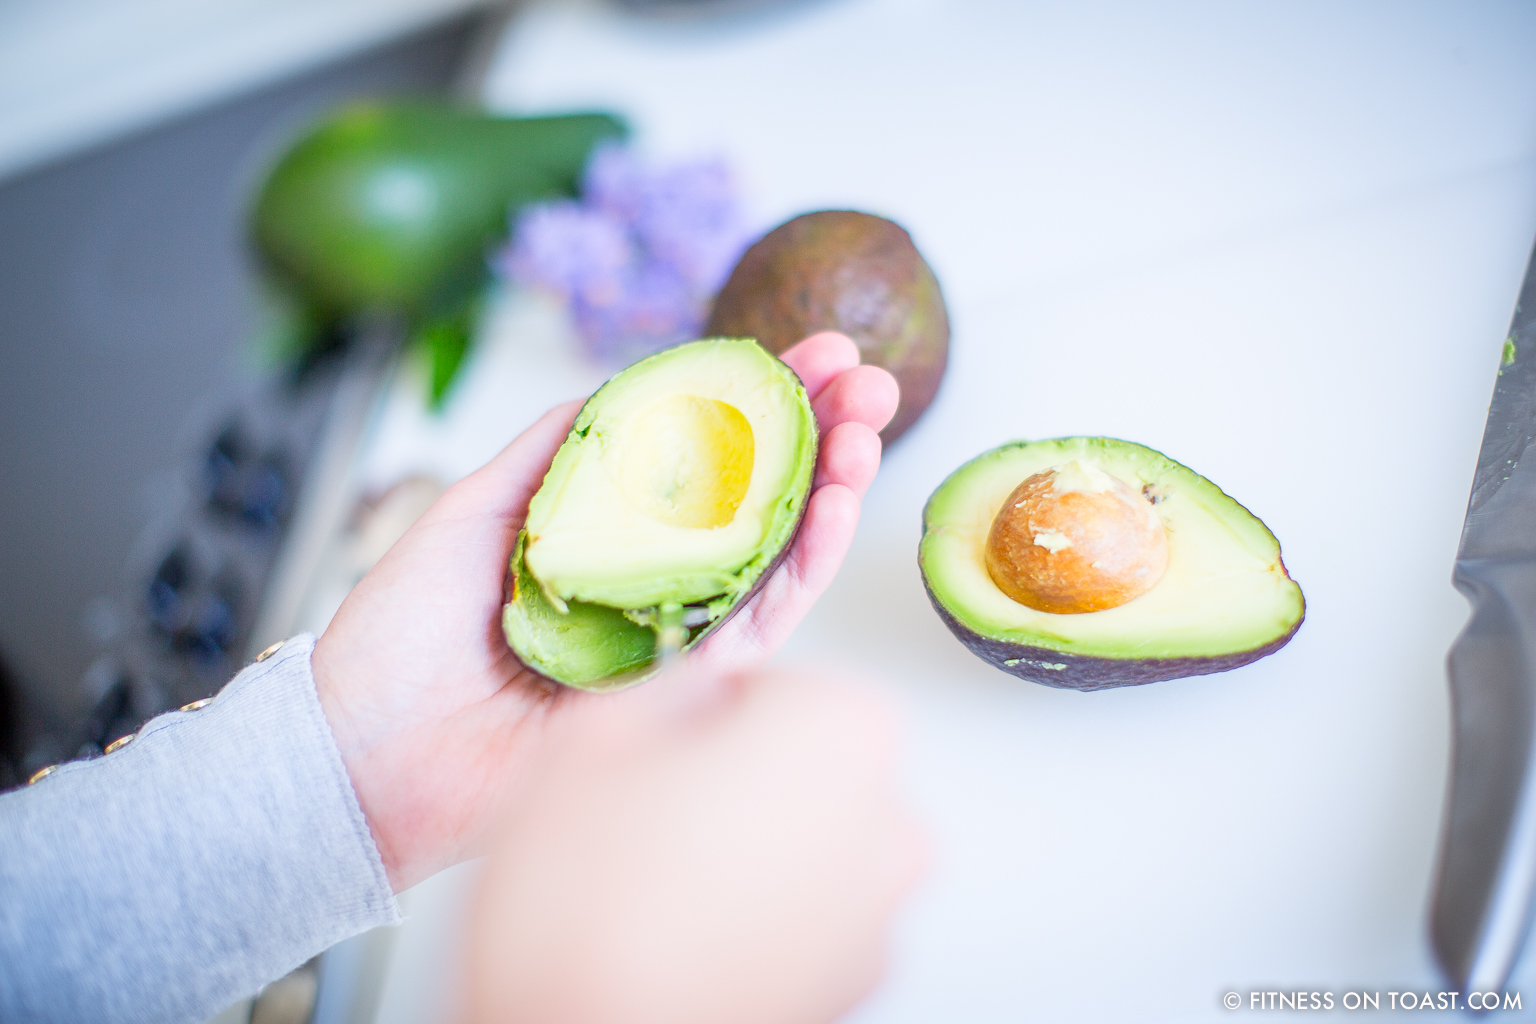 Fitness On Toast Faya Blog Girl Healthy Recipe Food Nutrition Health Diet Dessert Indulge Chocolate Mousse Avocado Lighter Choice Tasty Delicious Treat-4